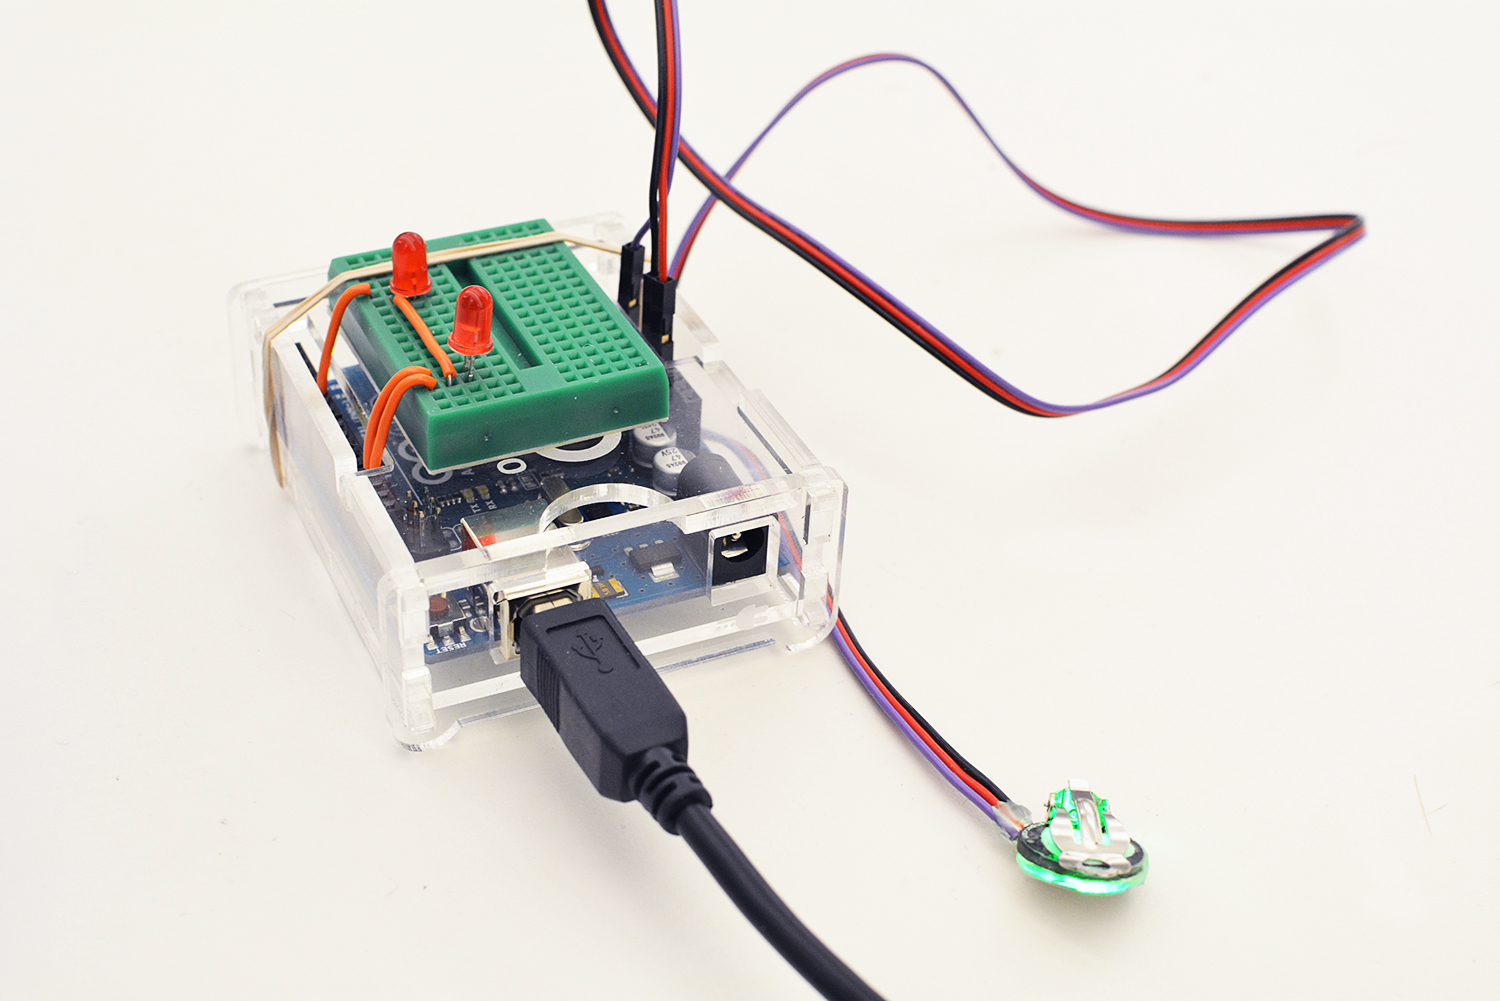 Pulse sensor with leds to indicate your heart rates.